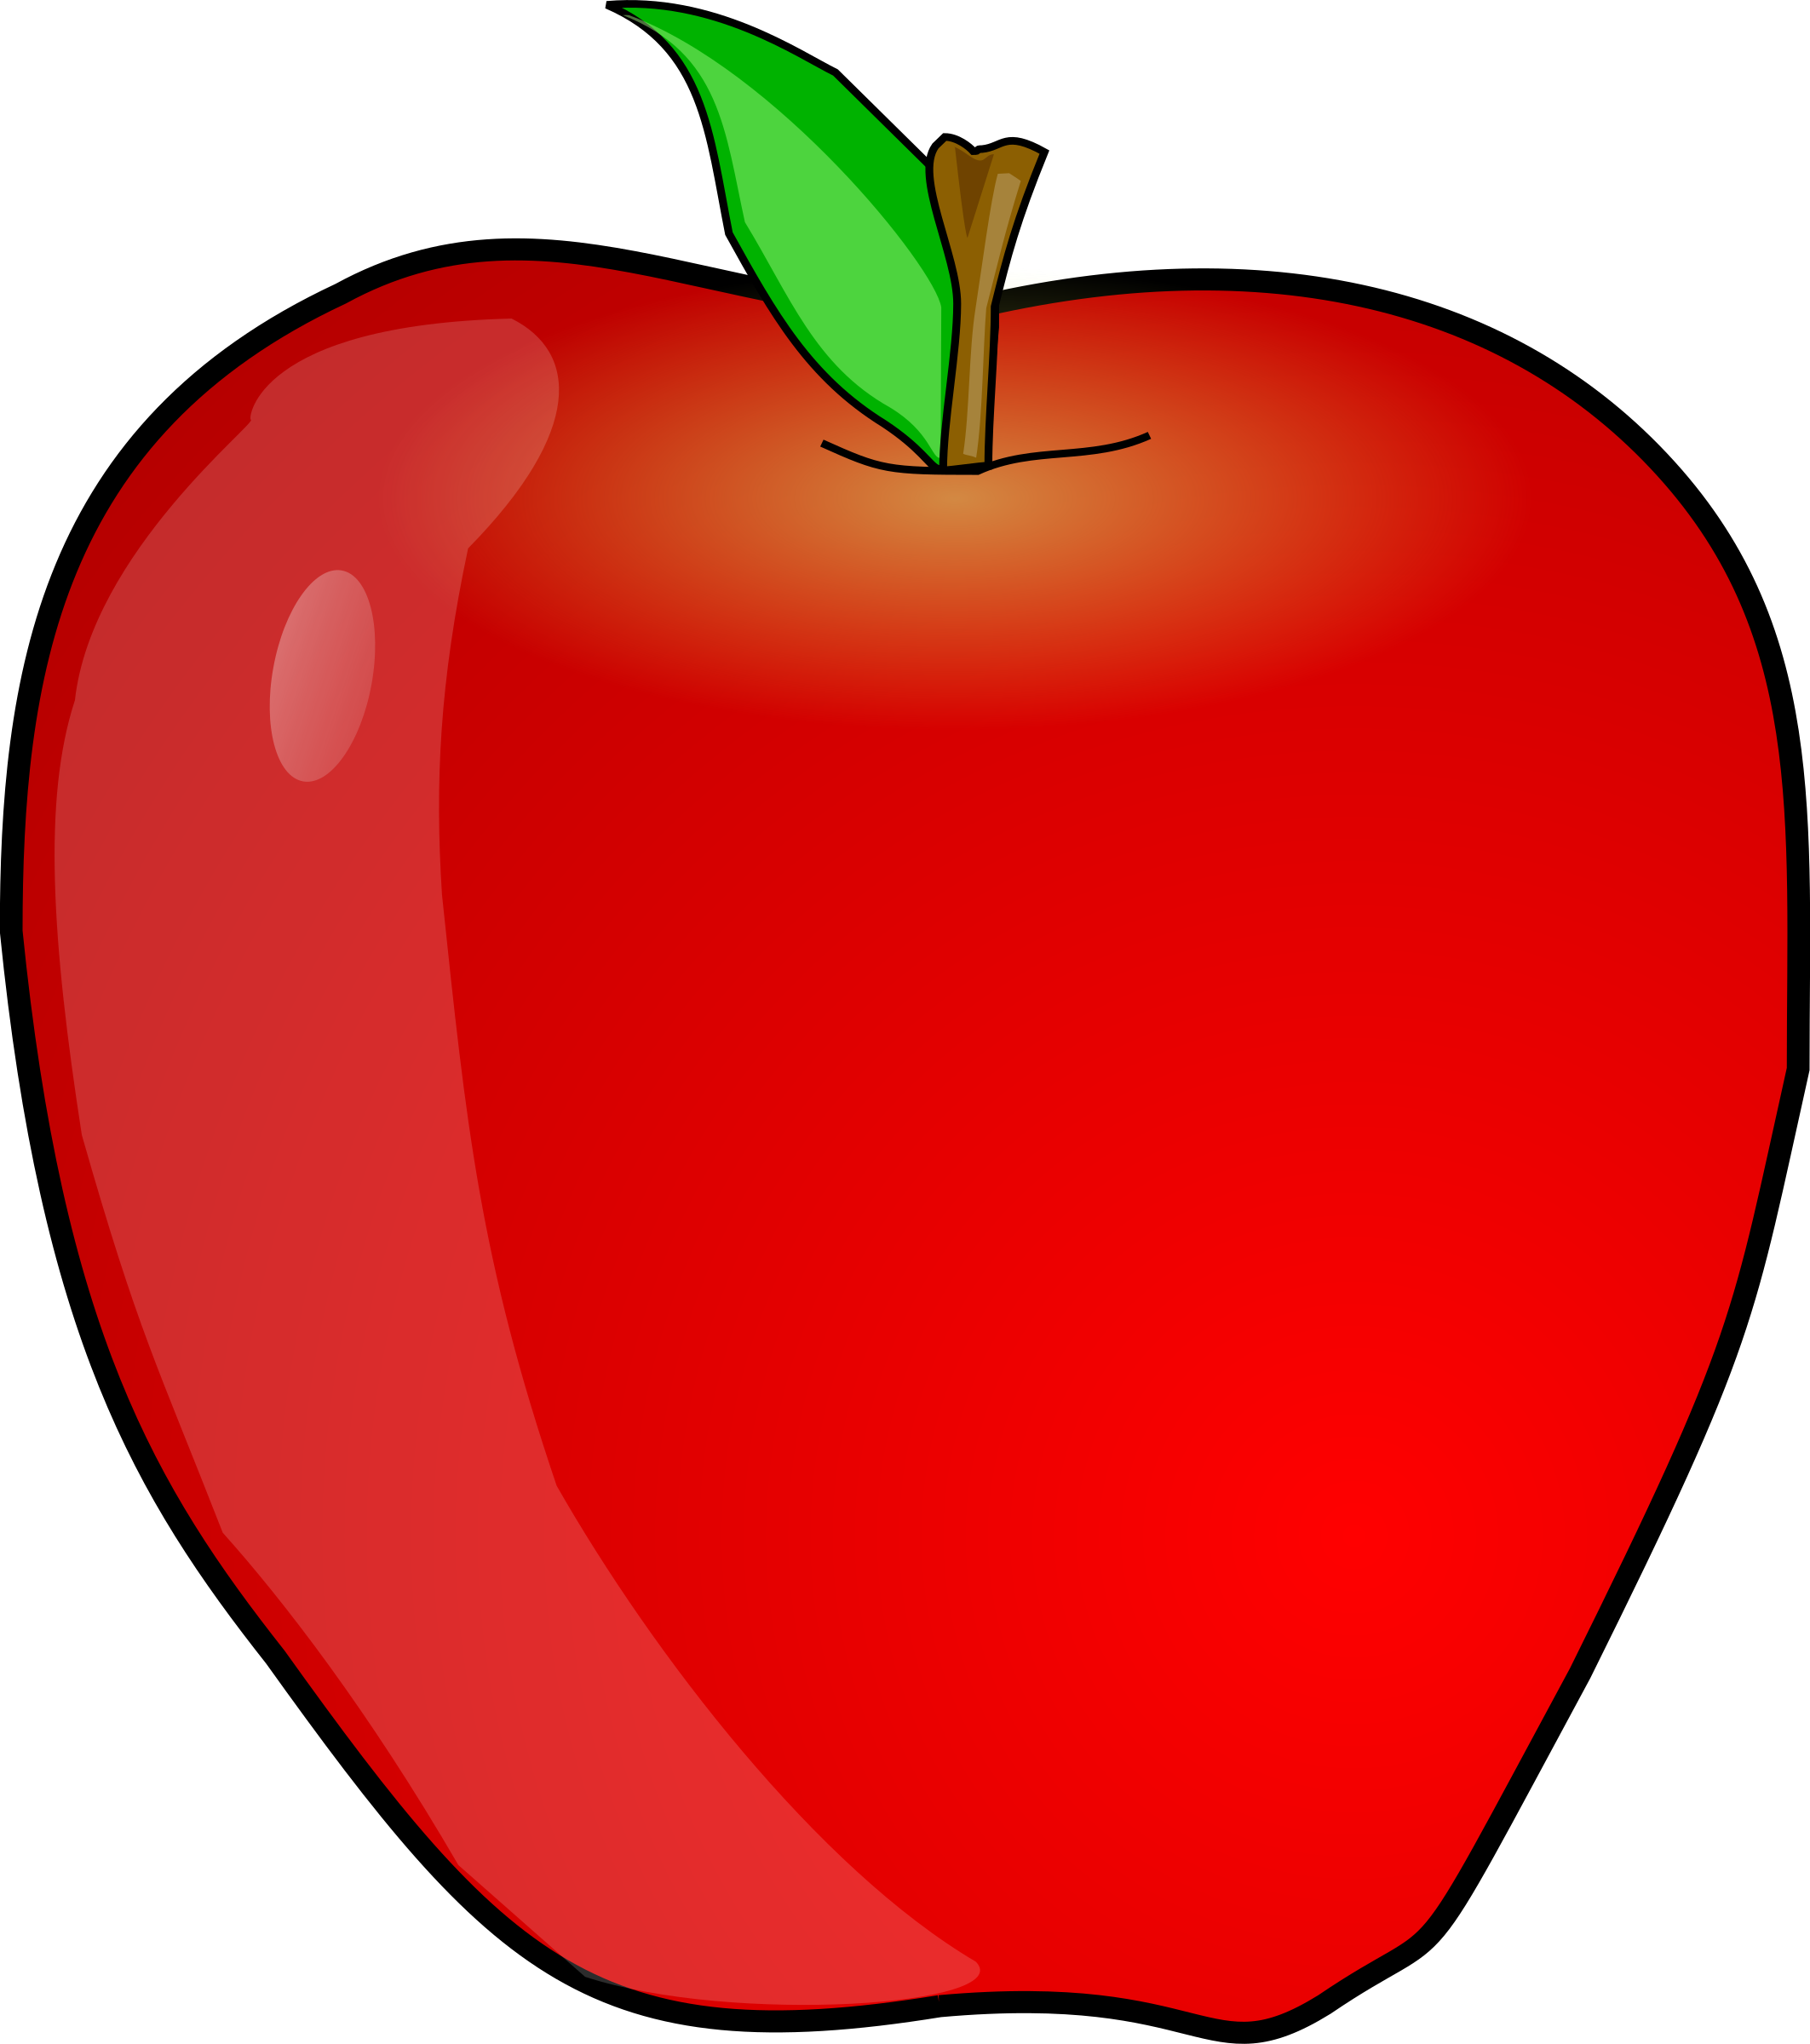 Cartoon apple png. Clipart another big image